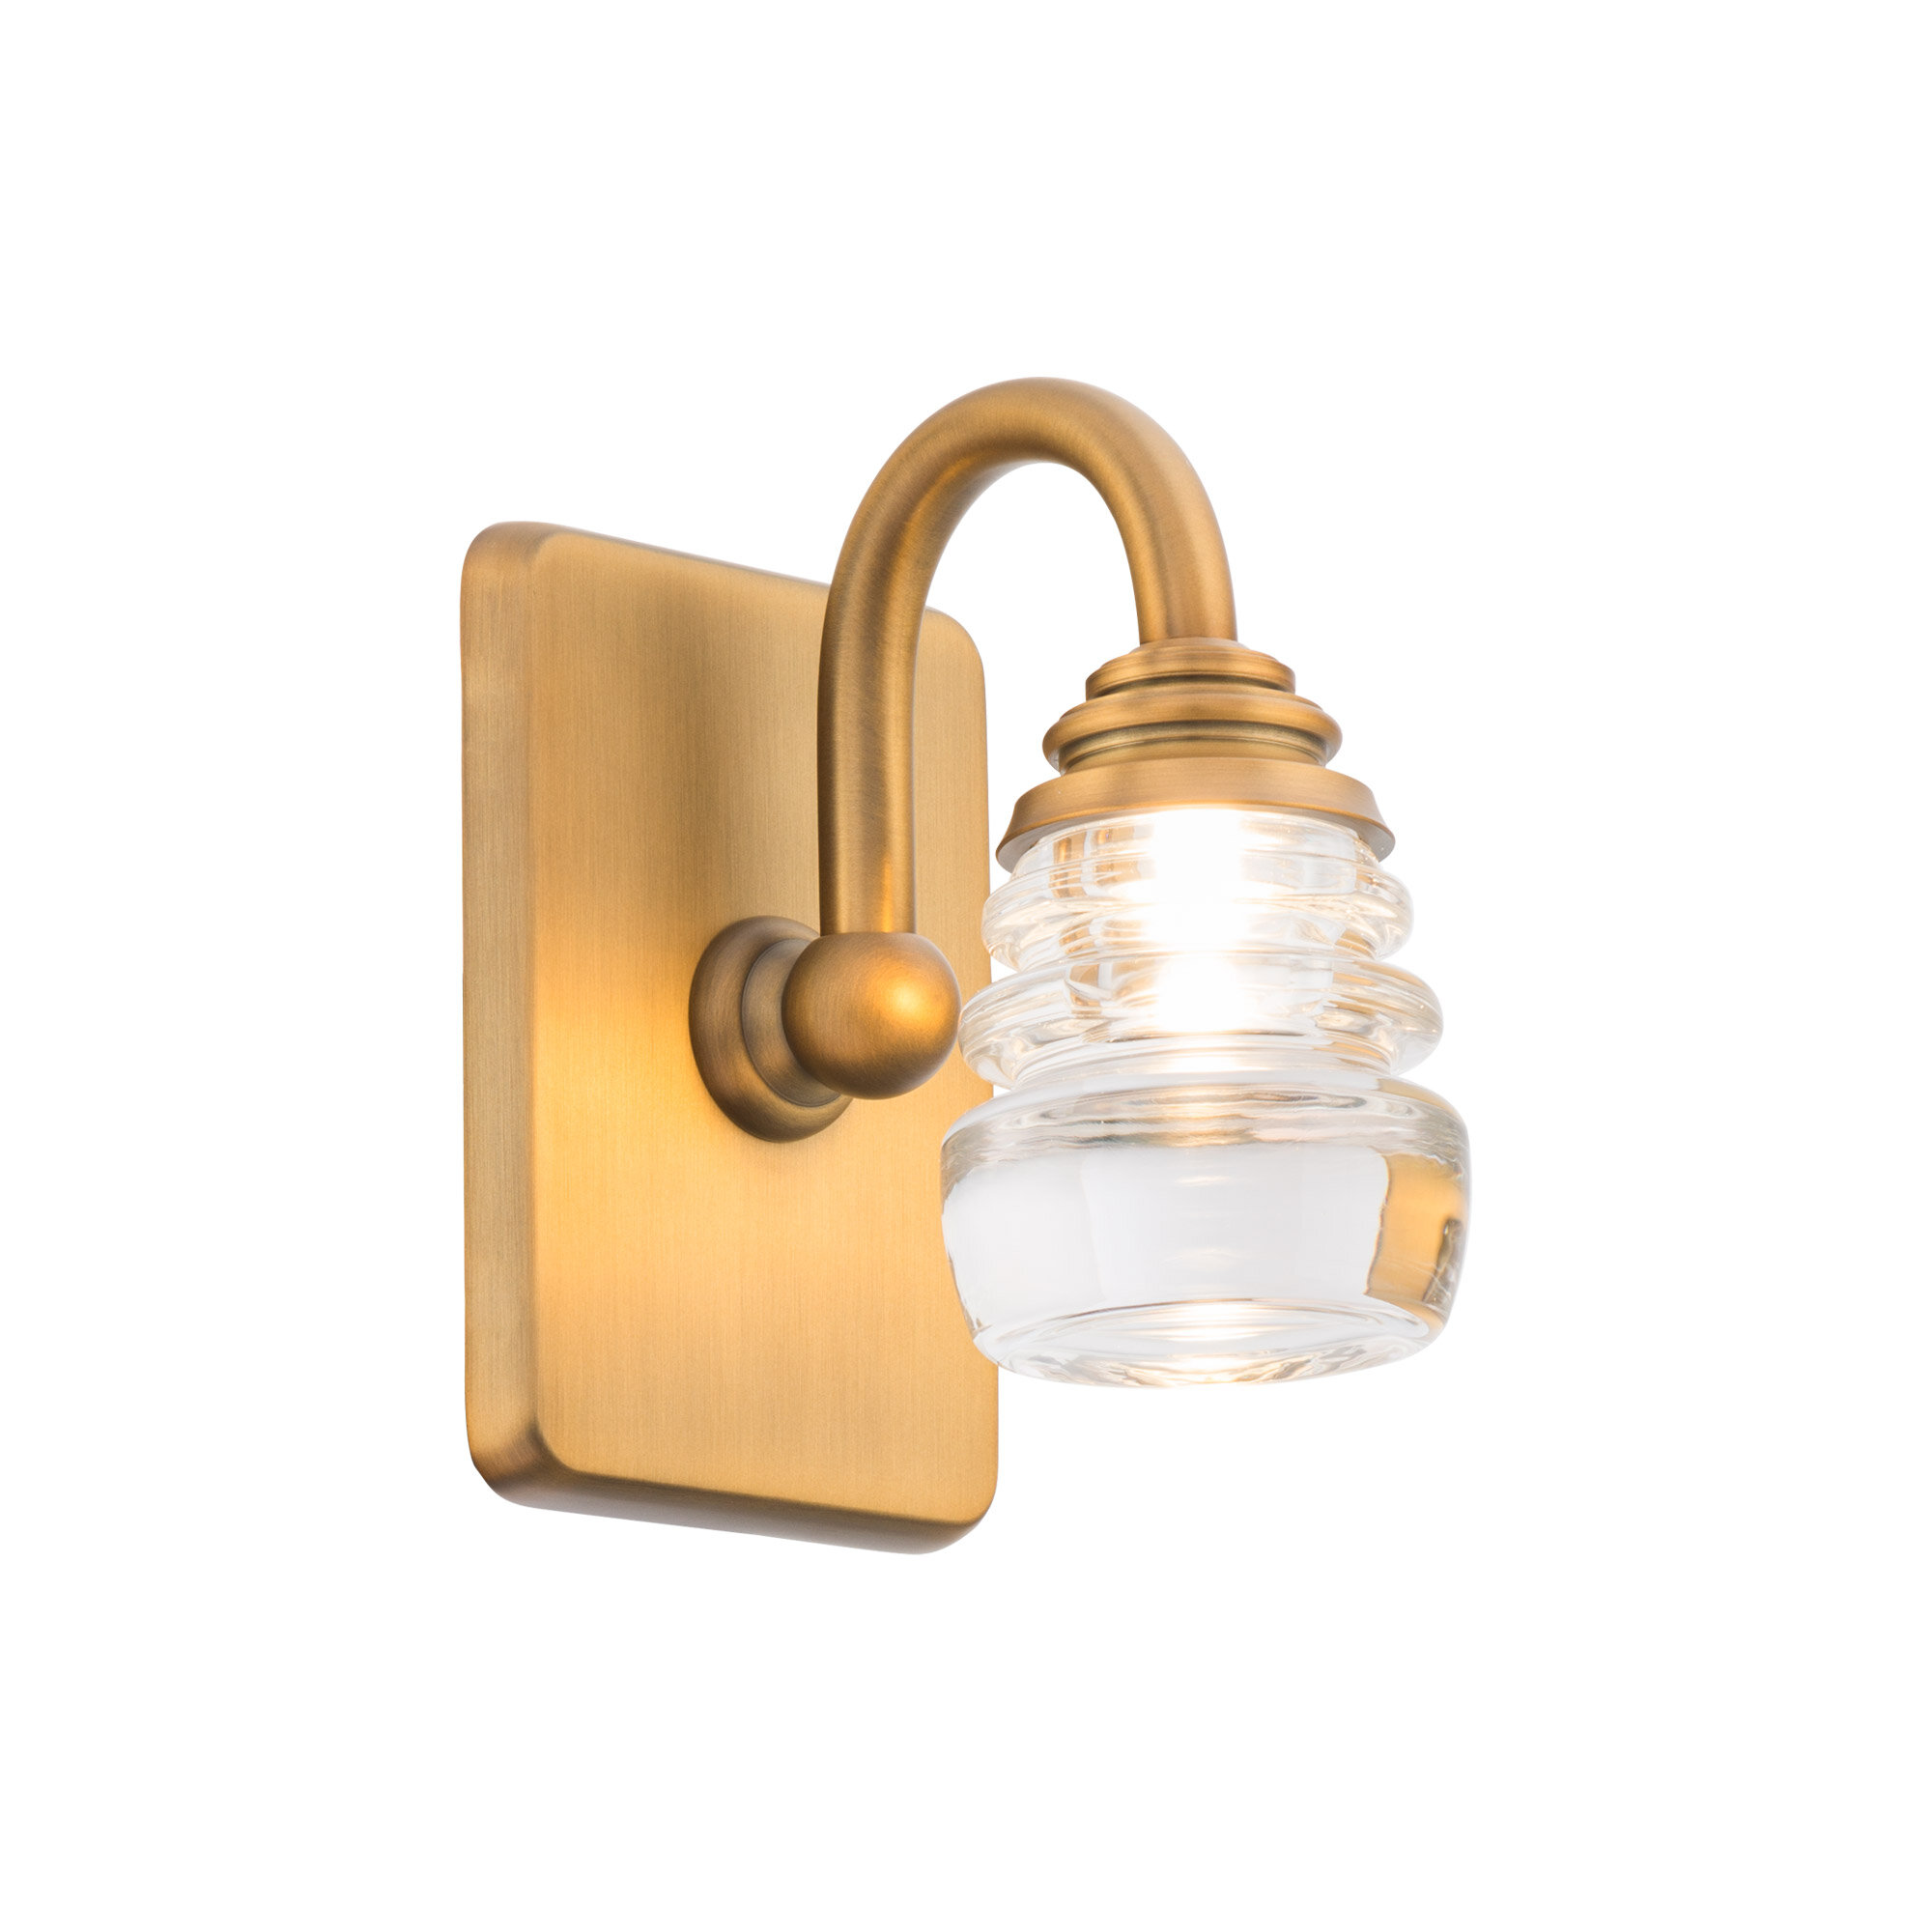 Armed Sconce Led Wall Lights You Ll Love In 2021 Wayfair